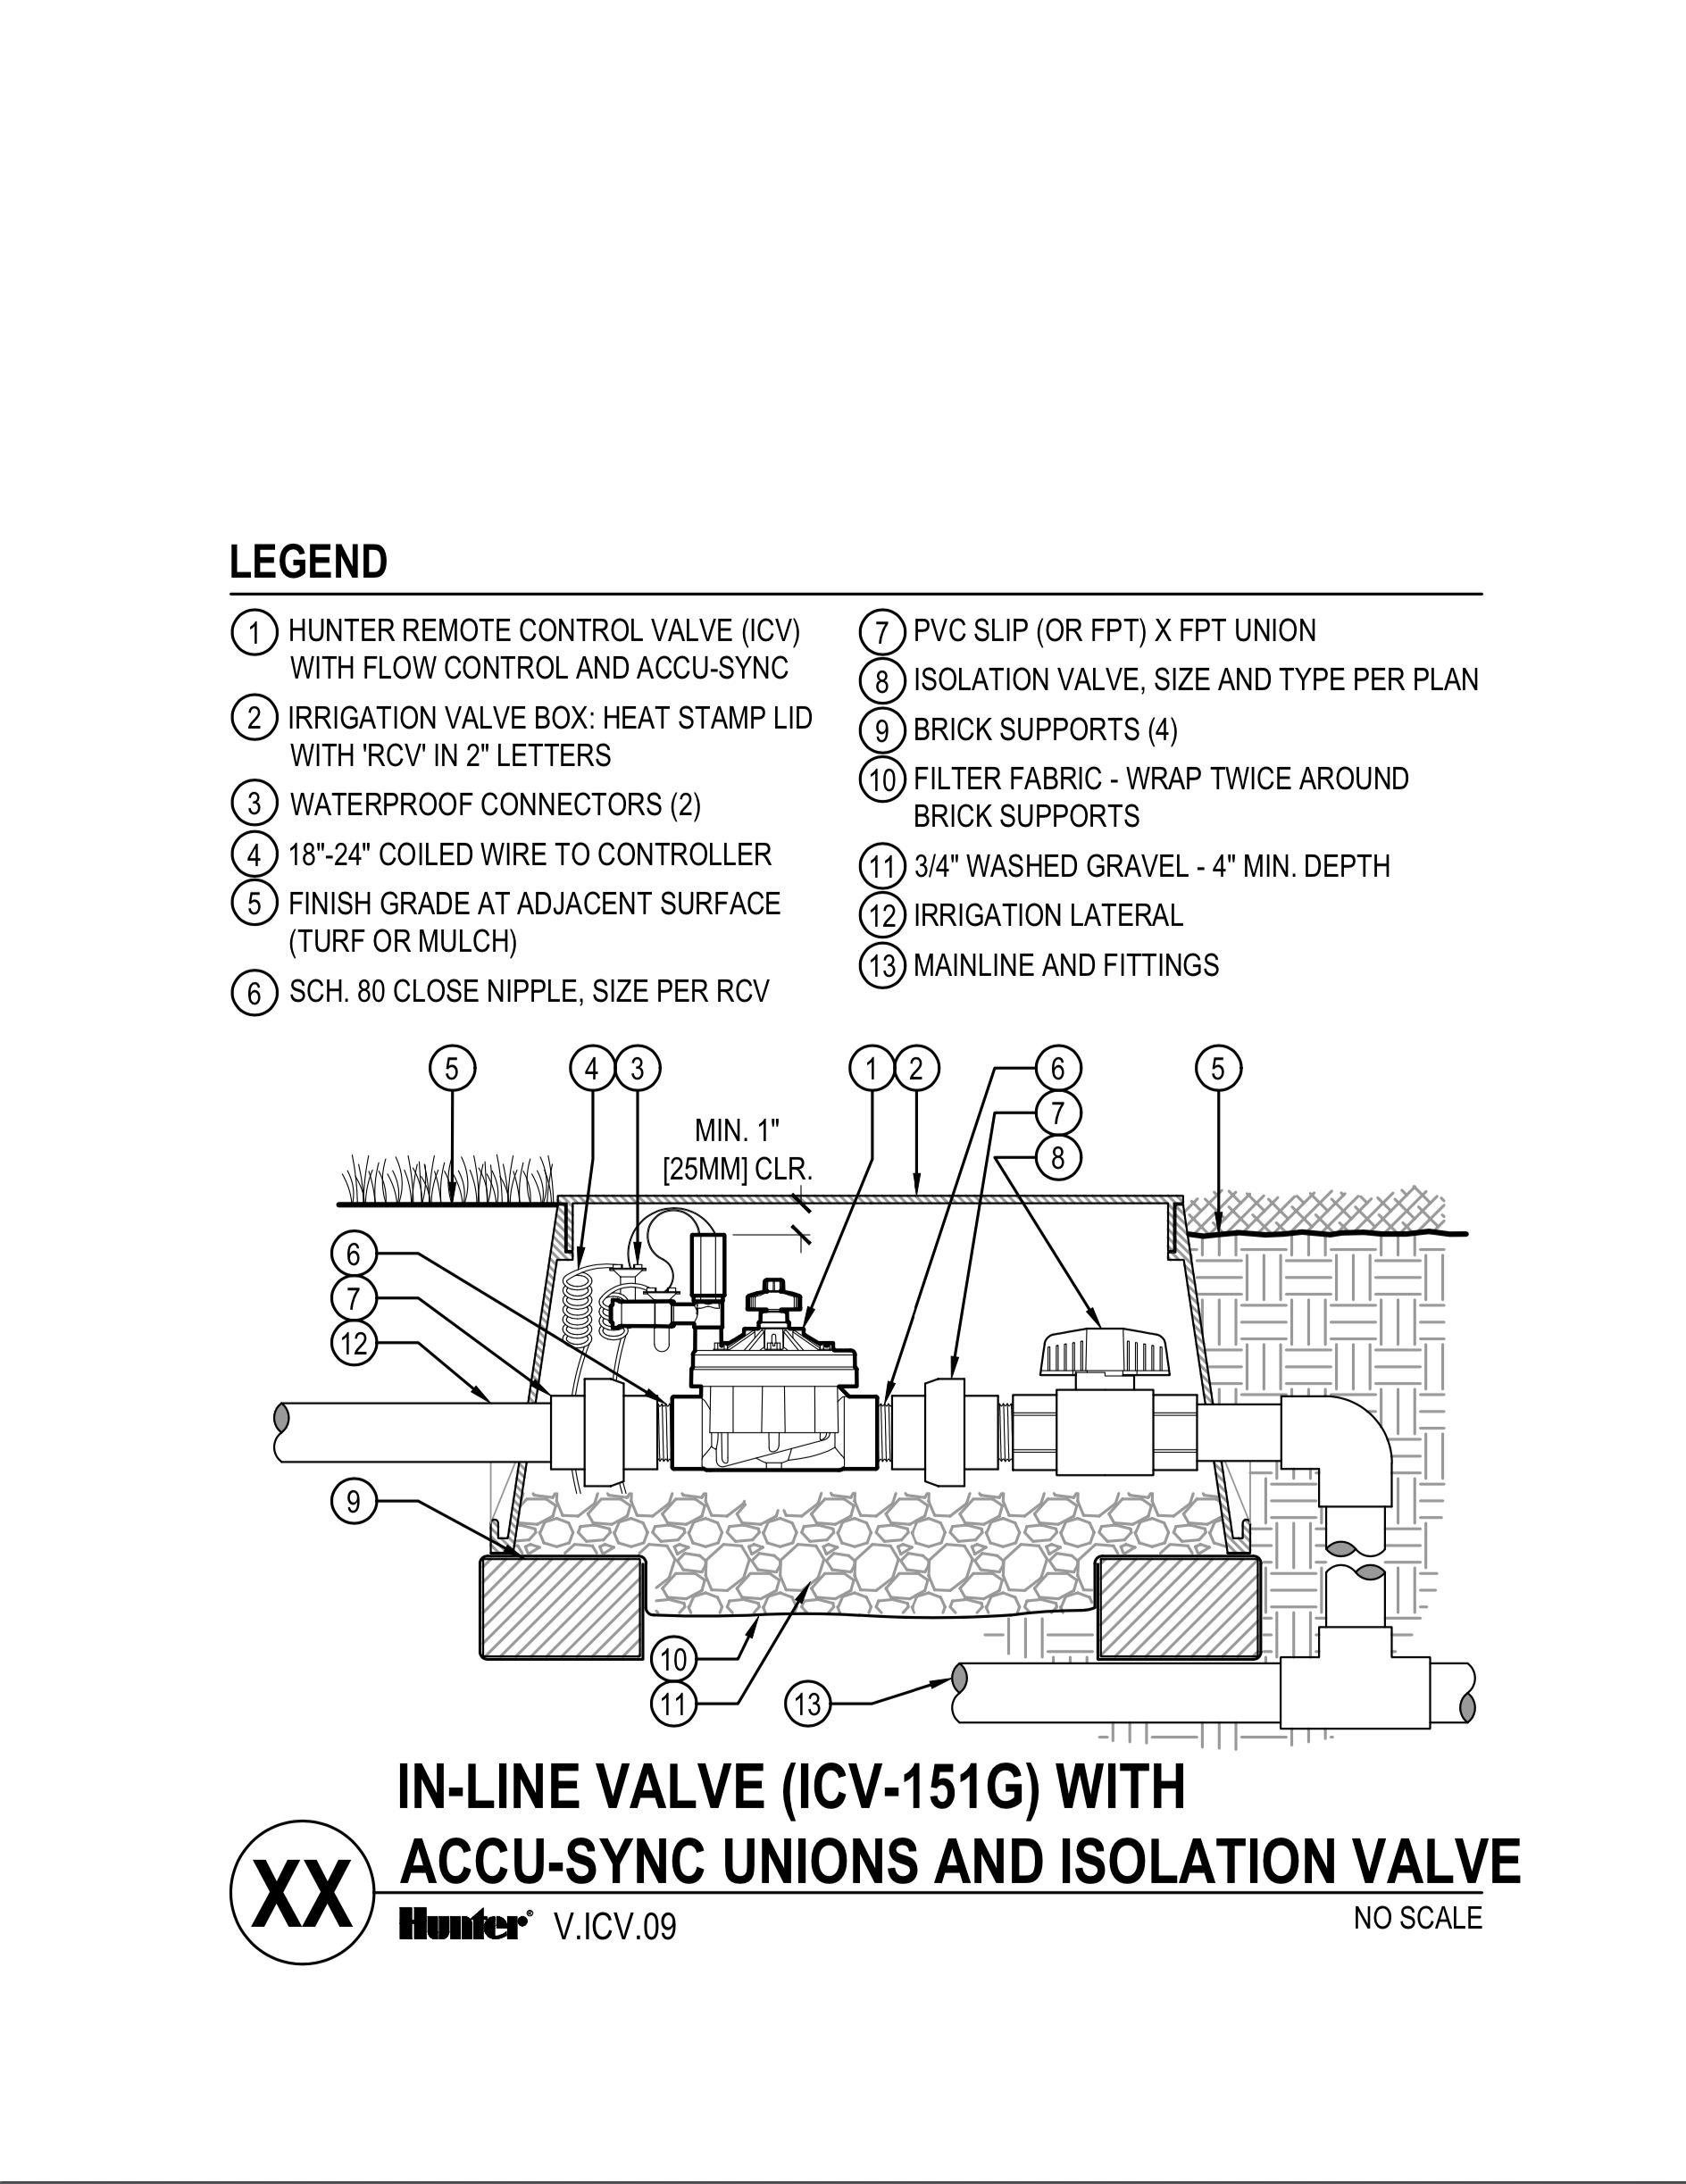 CAD - ICV-151G With Accu Sync